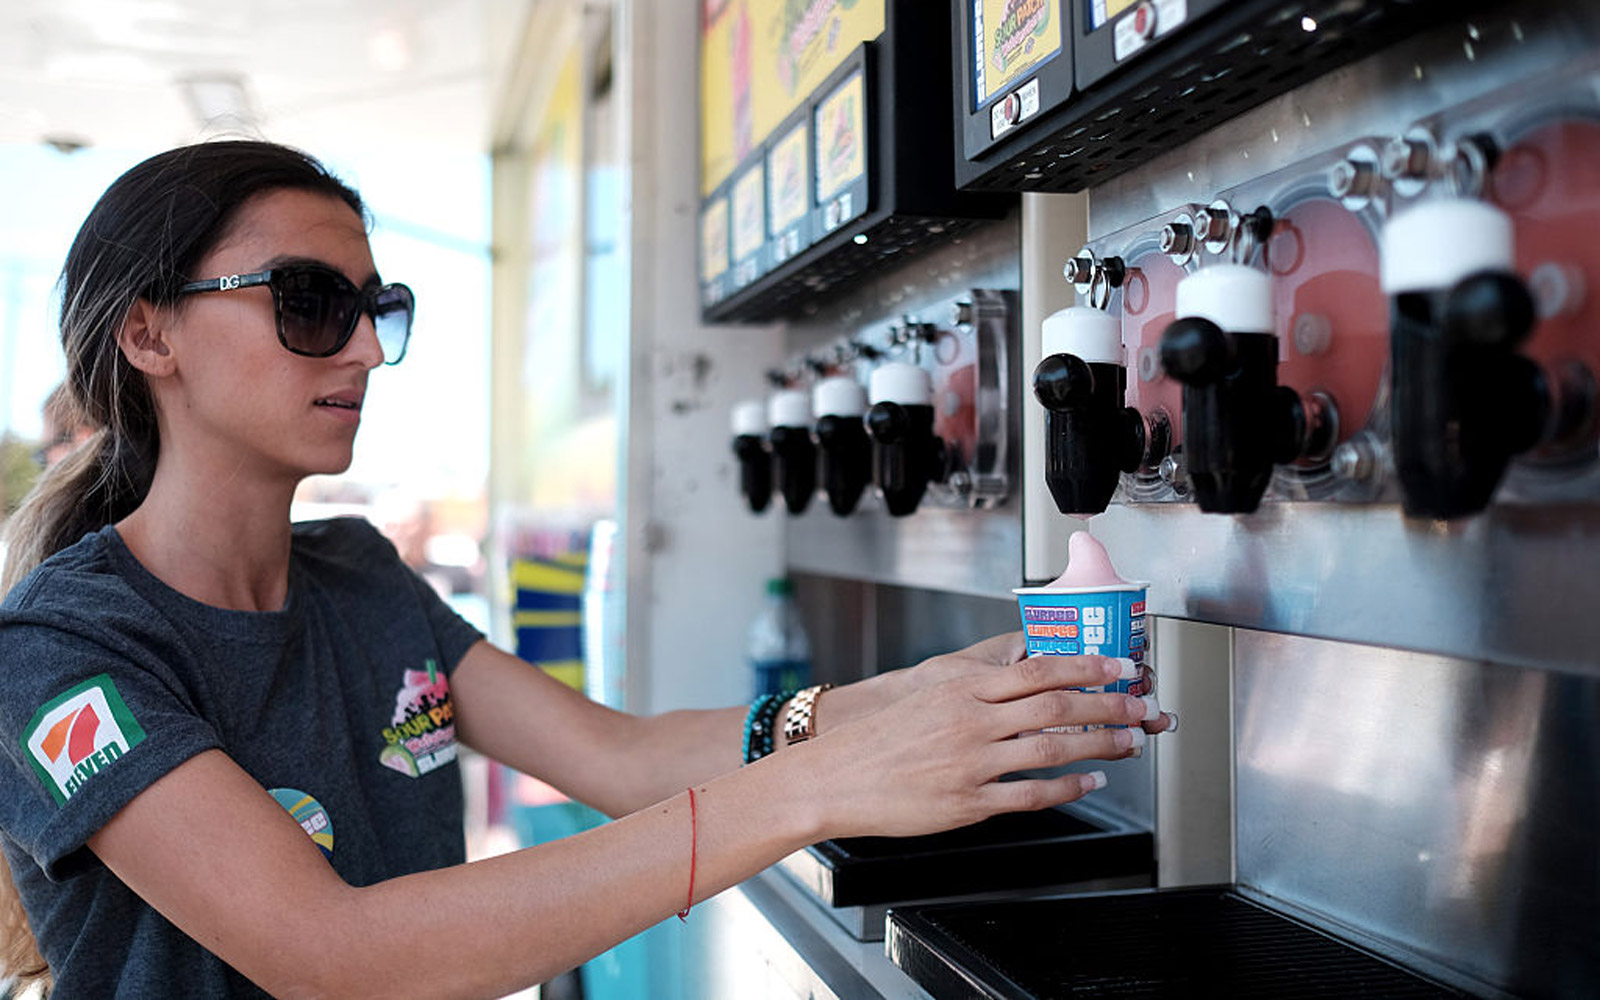 Here's How to Get Free 7-Eleven Slurpees on Tuesday